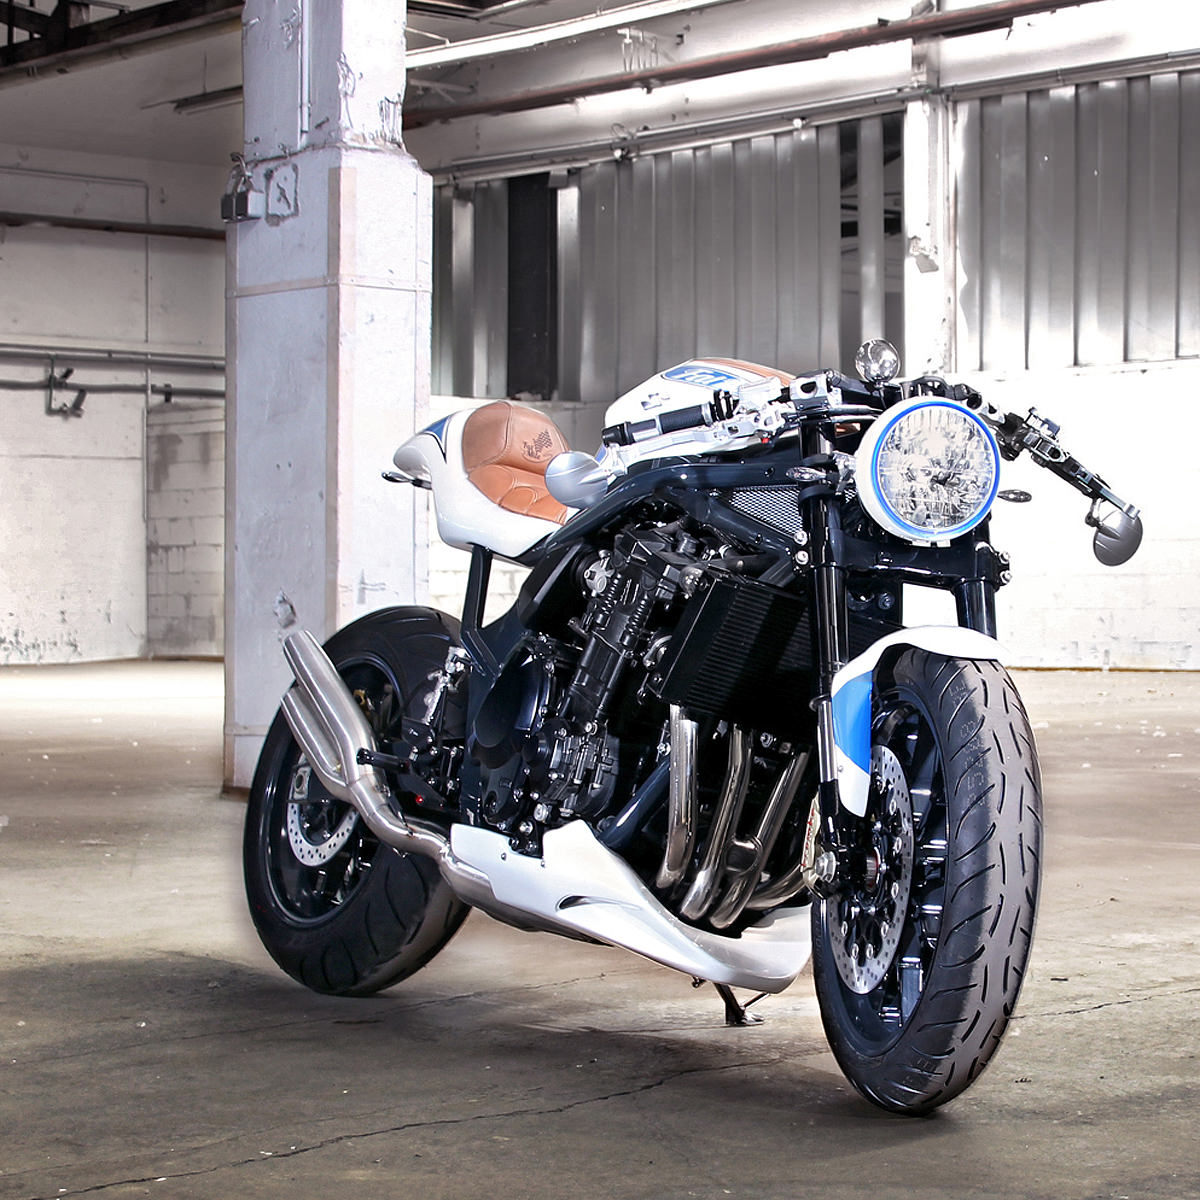 Suzuki Bandit 1250 customized by Daniel Händler adn Hans Muth